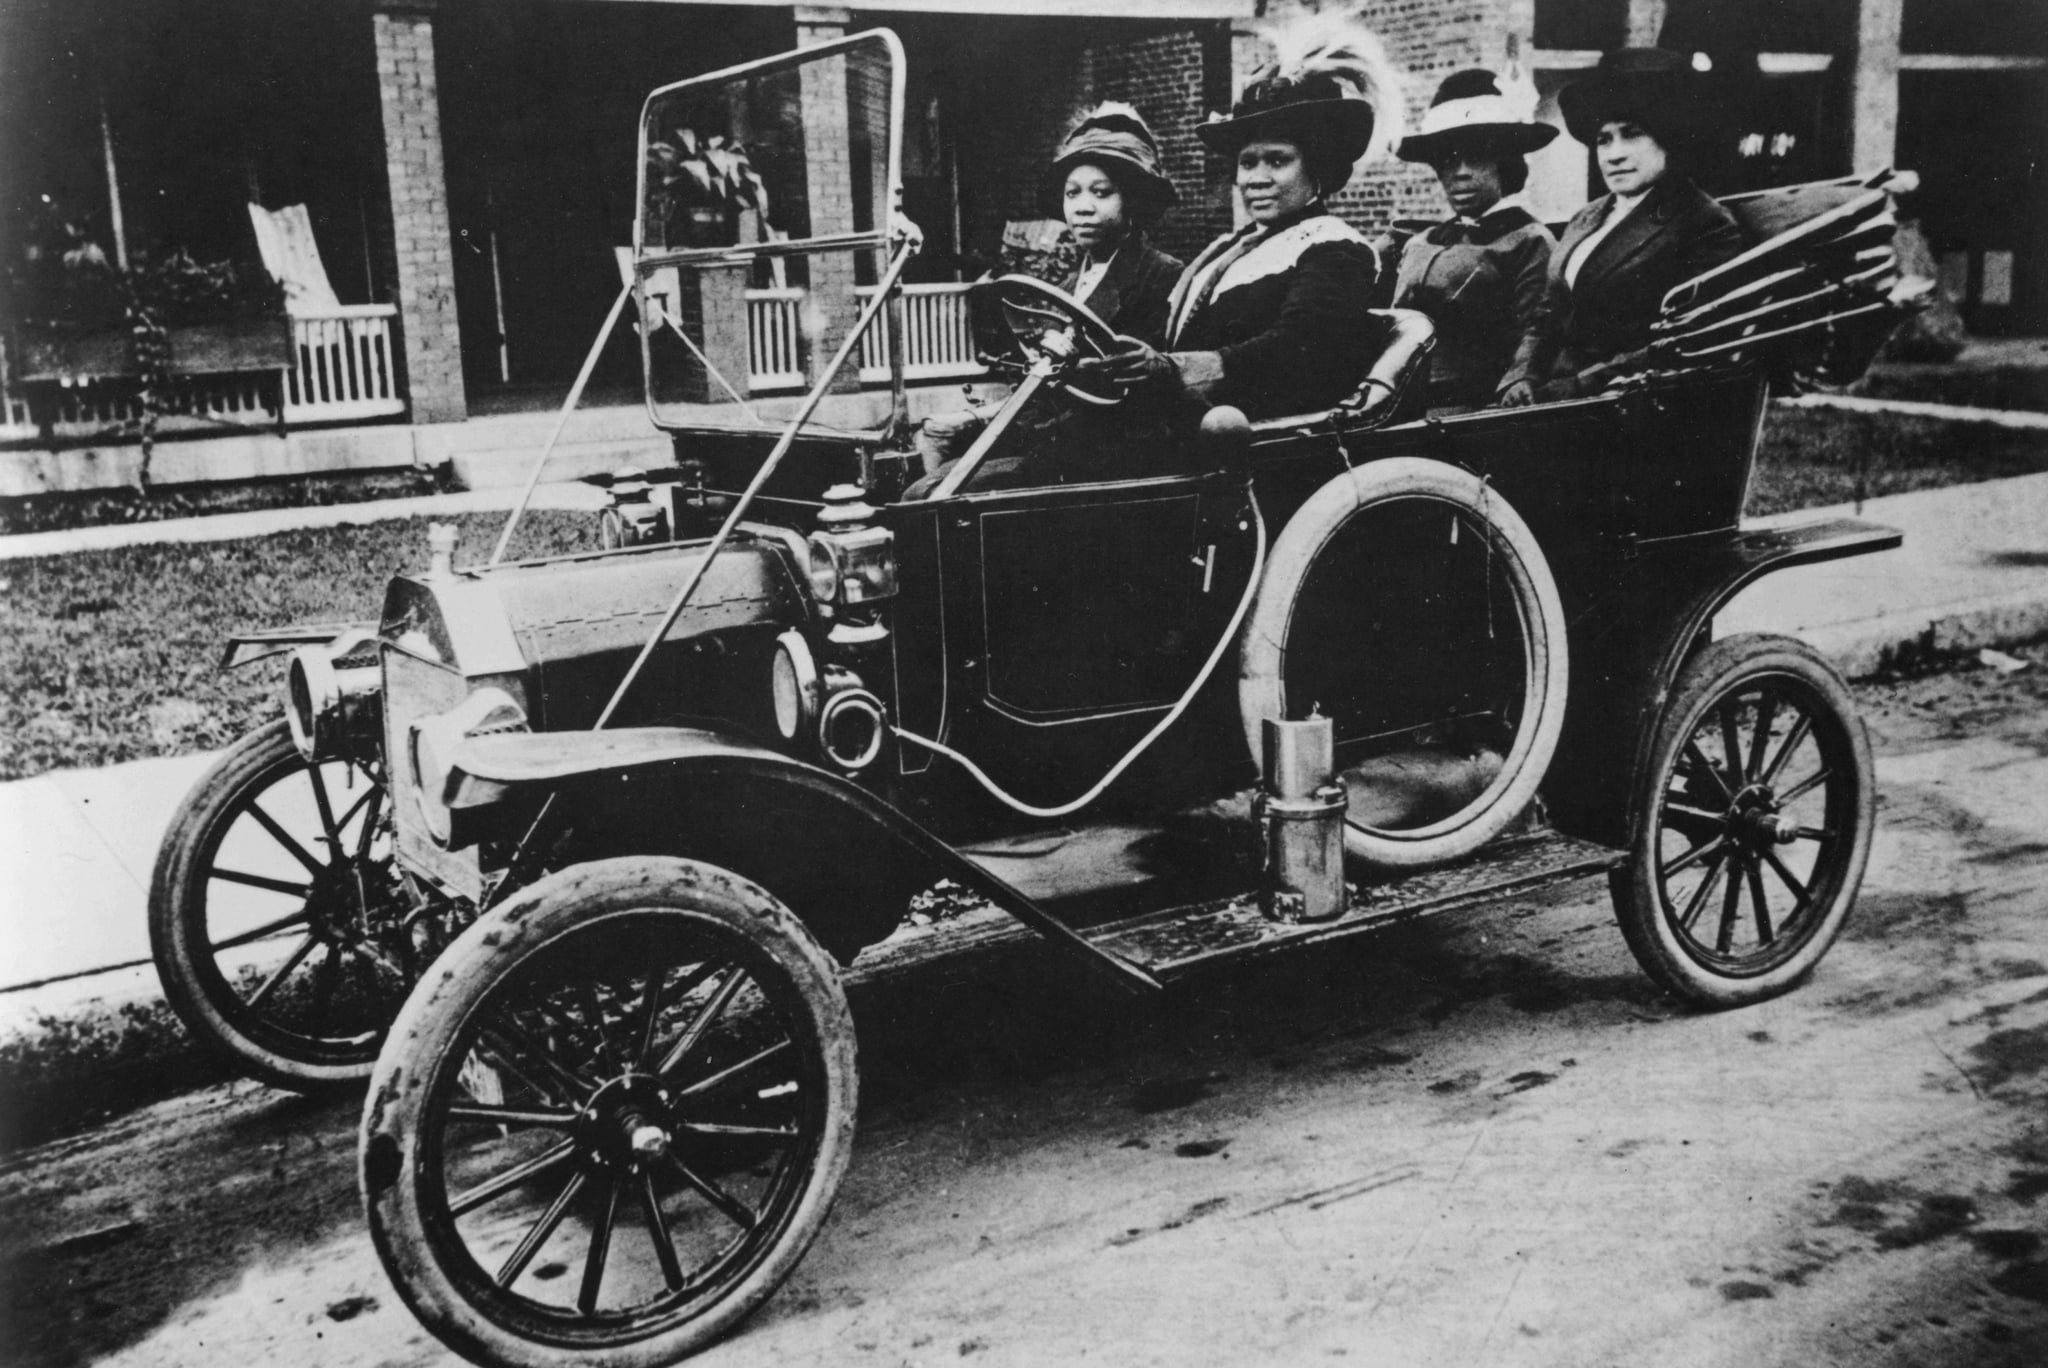 A photograph of Sarah Breedlove driving a car, she was better known as Madam C.J. Walker, the first woman to become a self-made millionaire in the United States, 1911. From the New York Public Library. (Photo by Smith Collection/Gado/Getty Images).